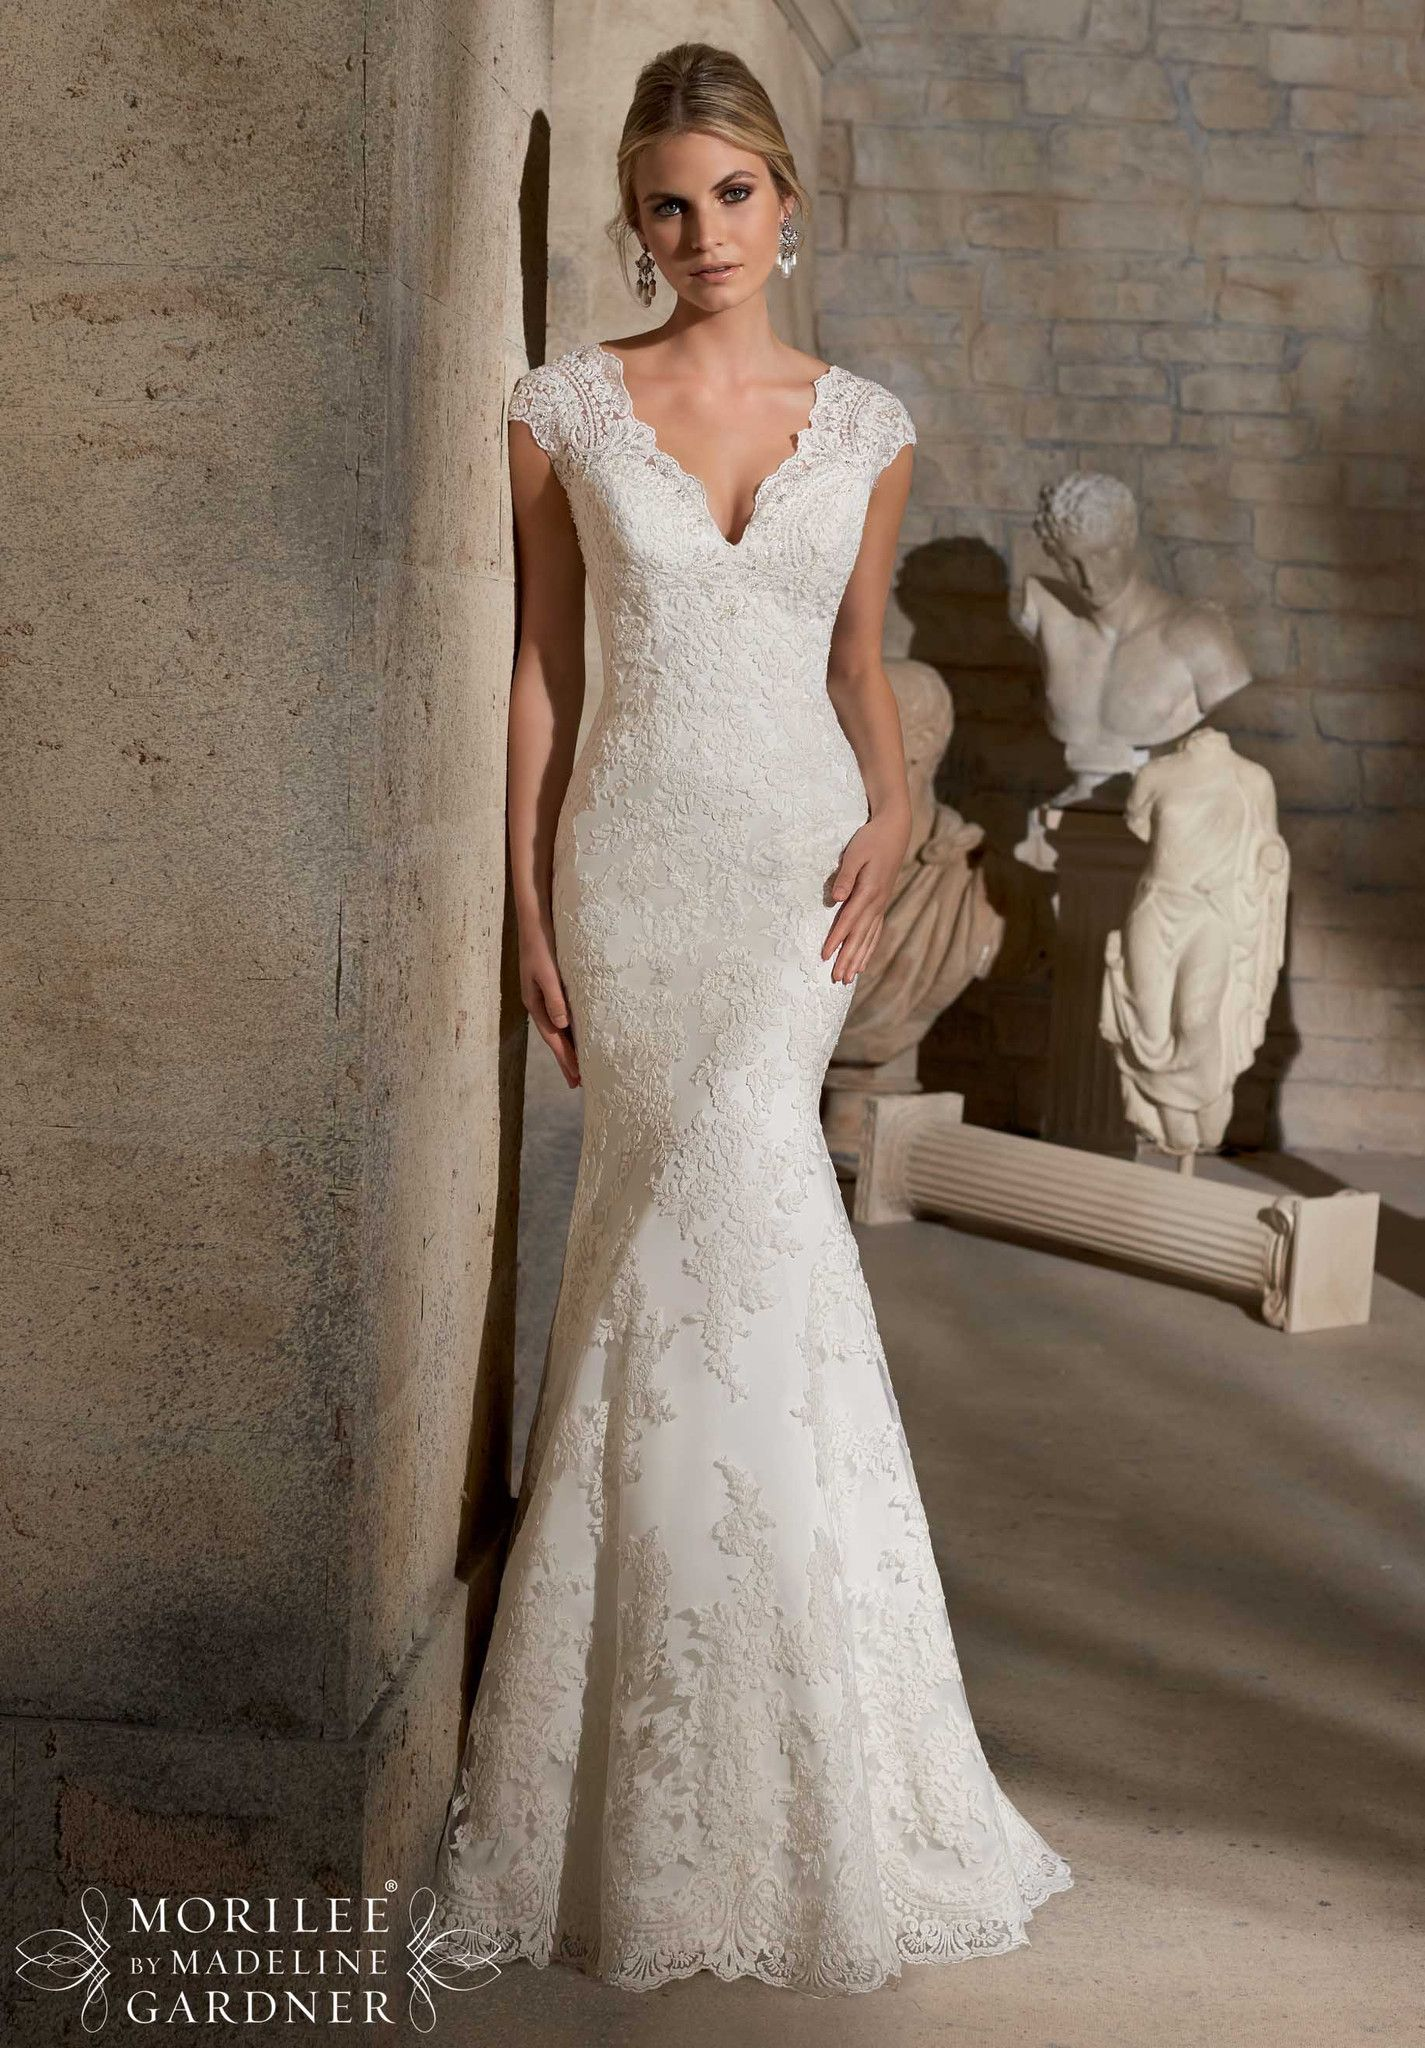 Mori lee embroidered appliqués on net with crystal beading and